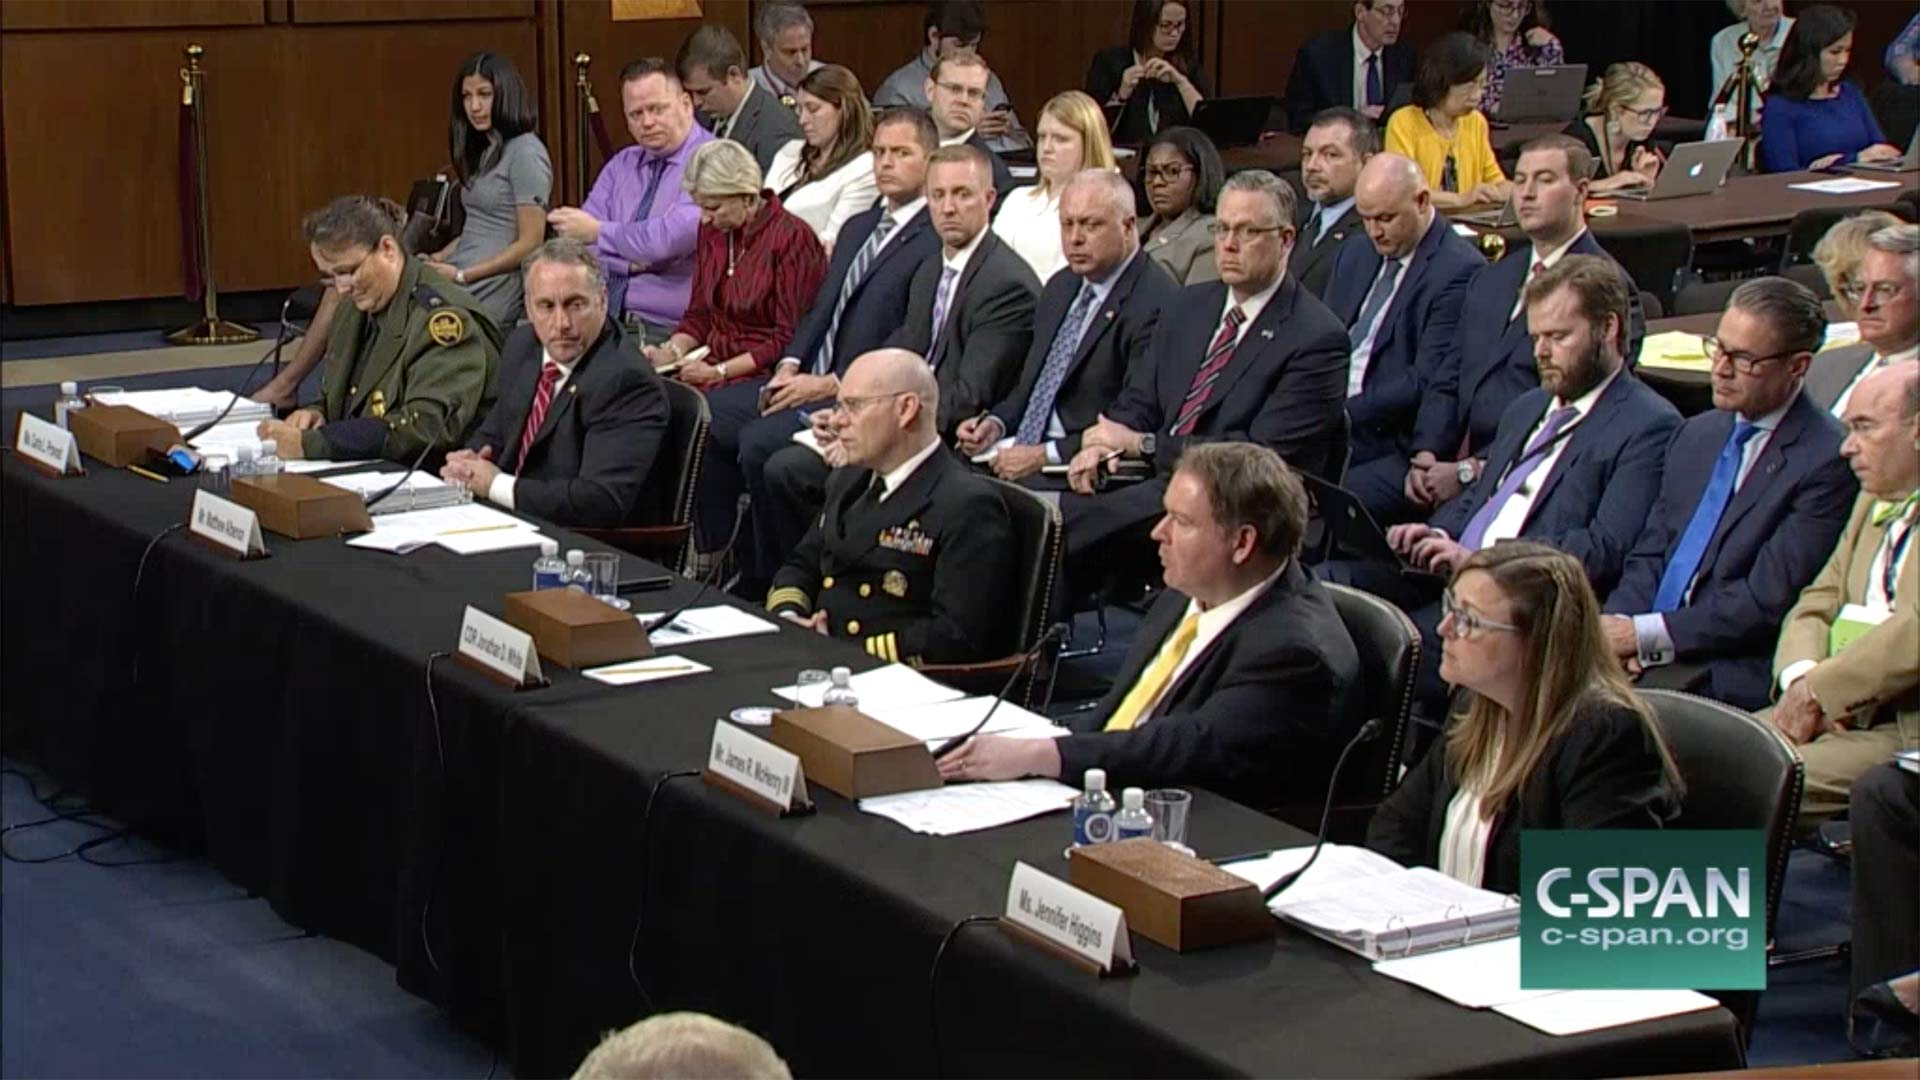 In this image from C-Span video, senior immigration officials sit before the Senate Judiciary Committee July 31, 2018, at a hearing about the separation of immigrant families.